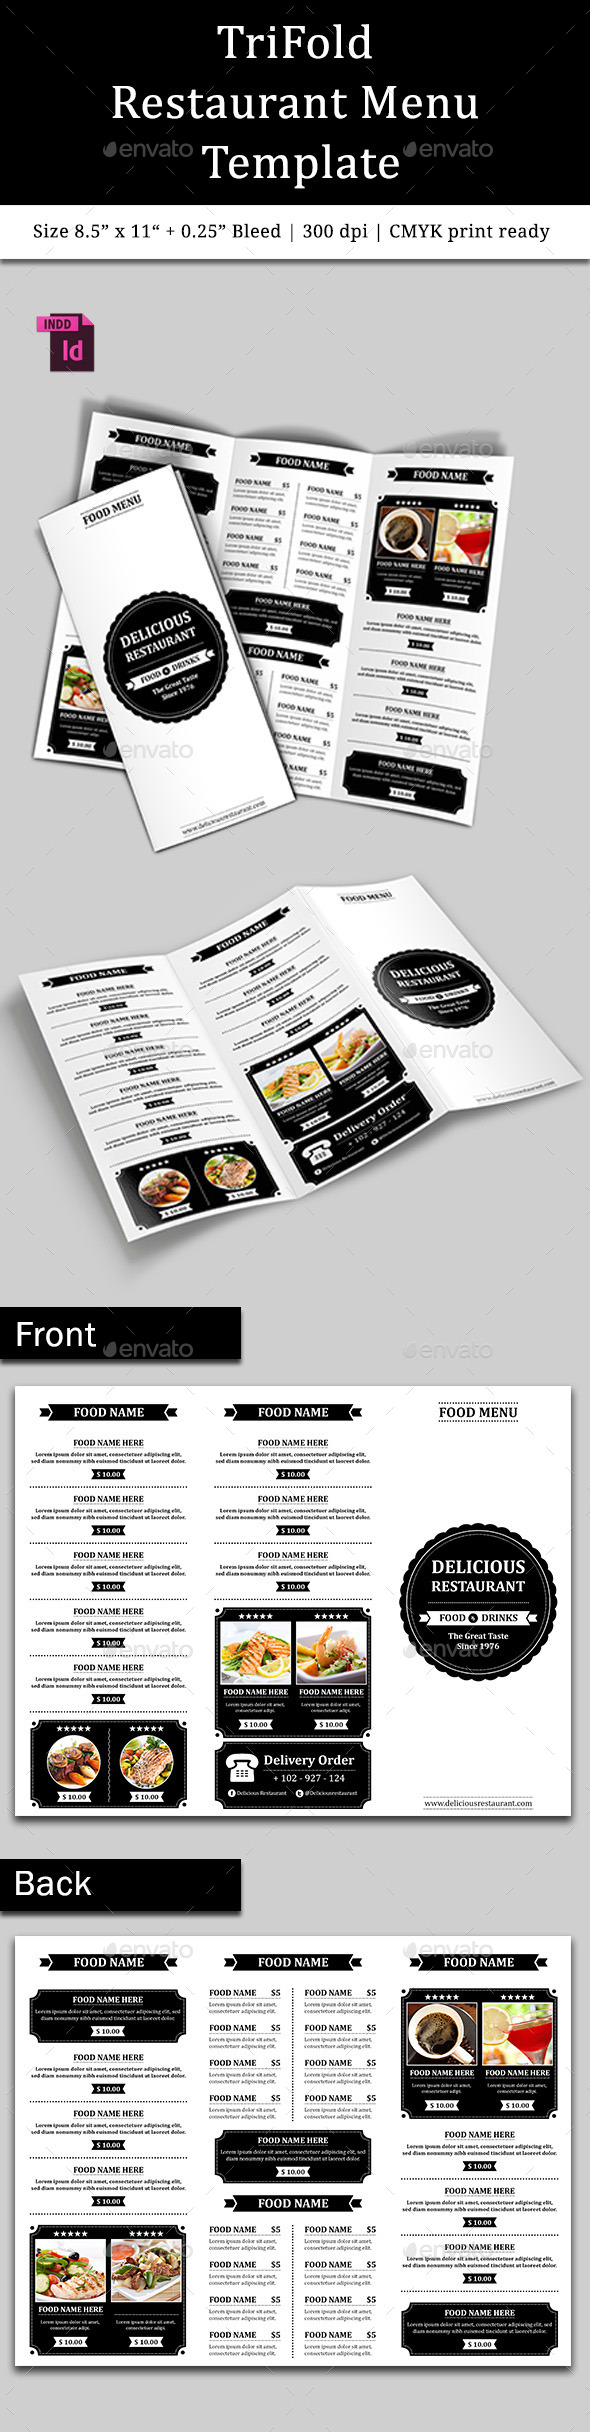 TriFold Restaurant Menu Template Vol. 6 - Food Menus Print Templates